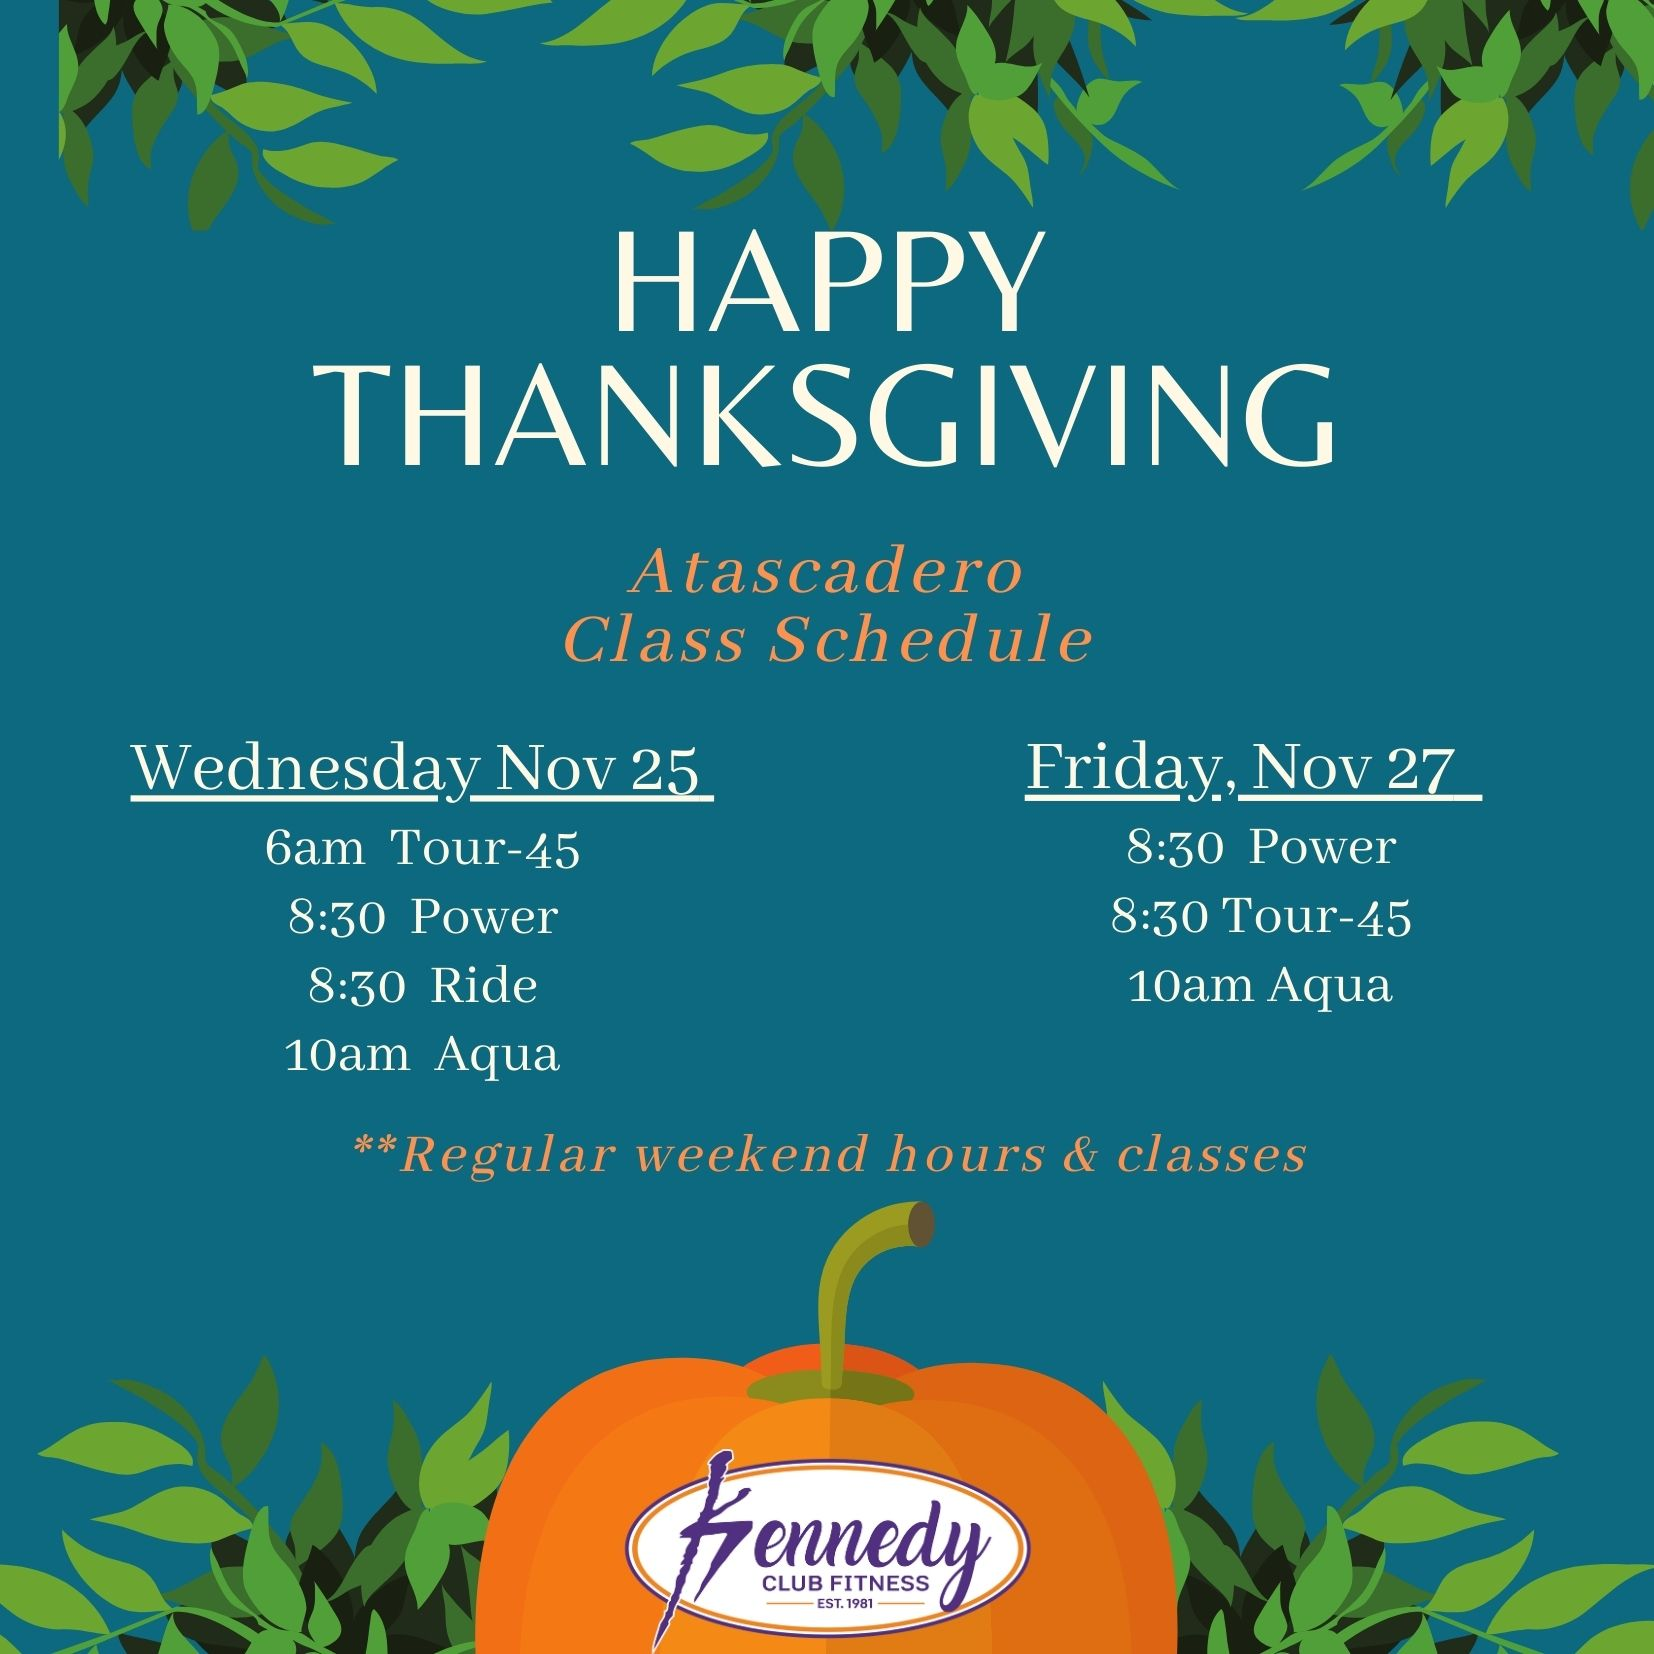 Kennedy Club Fitness Atascadero Group Exercise Schedule Thanksgiving 2020